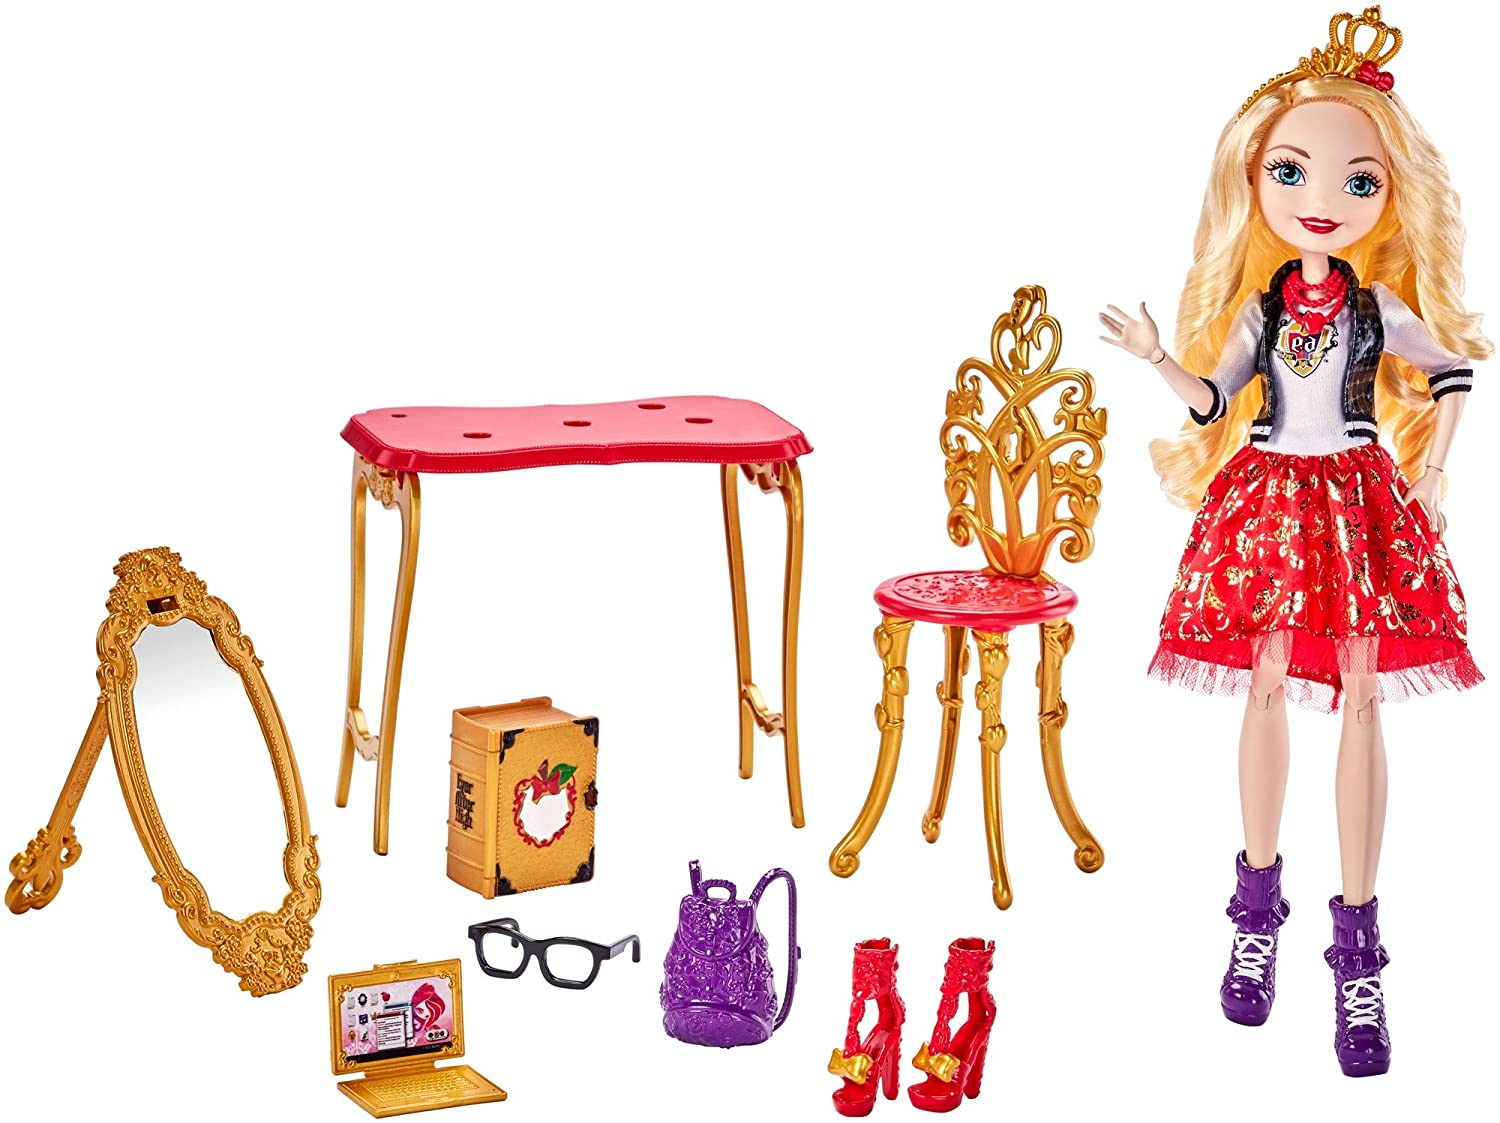 Awe Inspiring Ever After High Apple White Room To Study Doll Machost Co Dining Chair Design Ideas Machostcouk